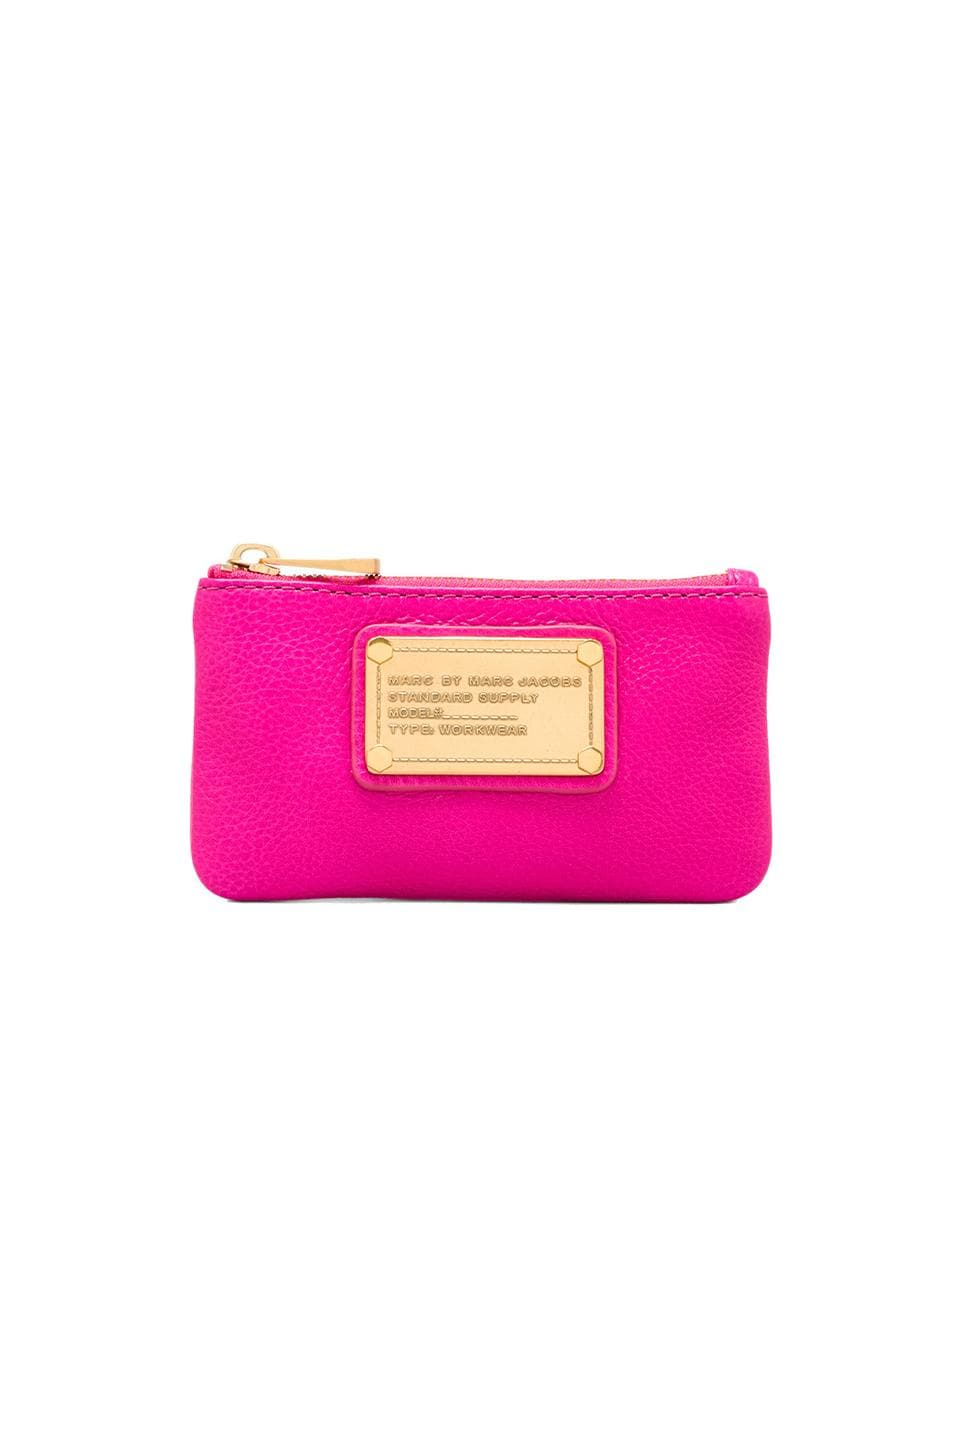 Marc by Marc Jacobs Classic Q Key Pouch in Pop Pink